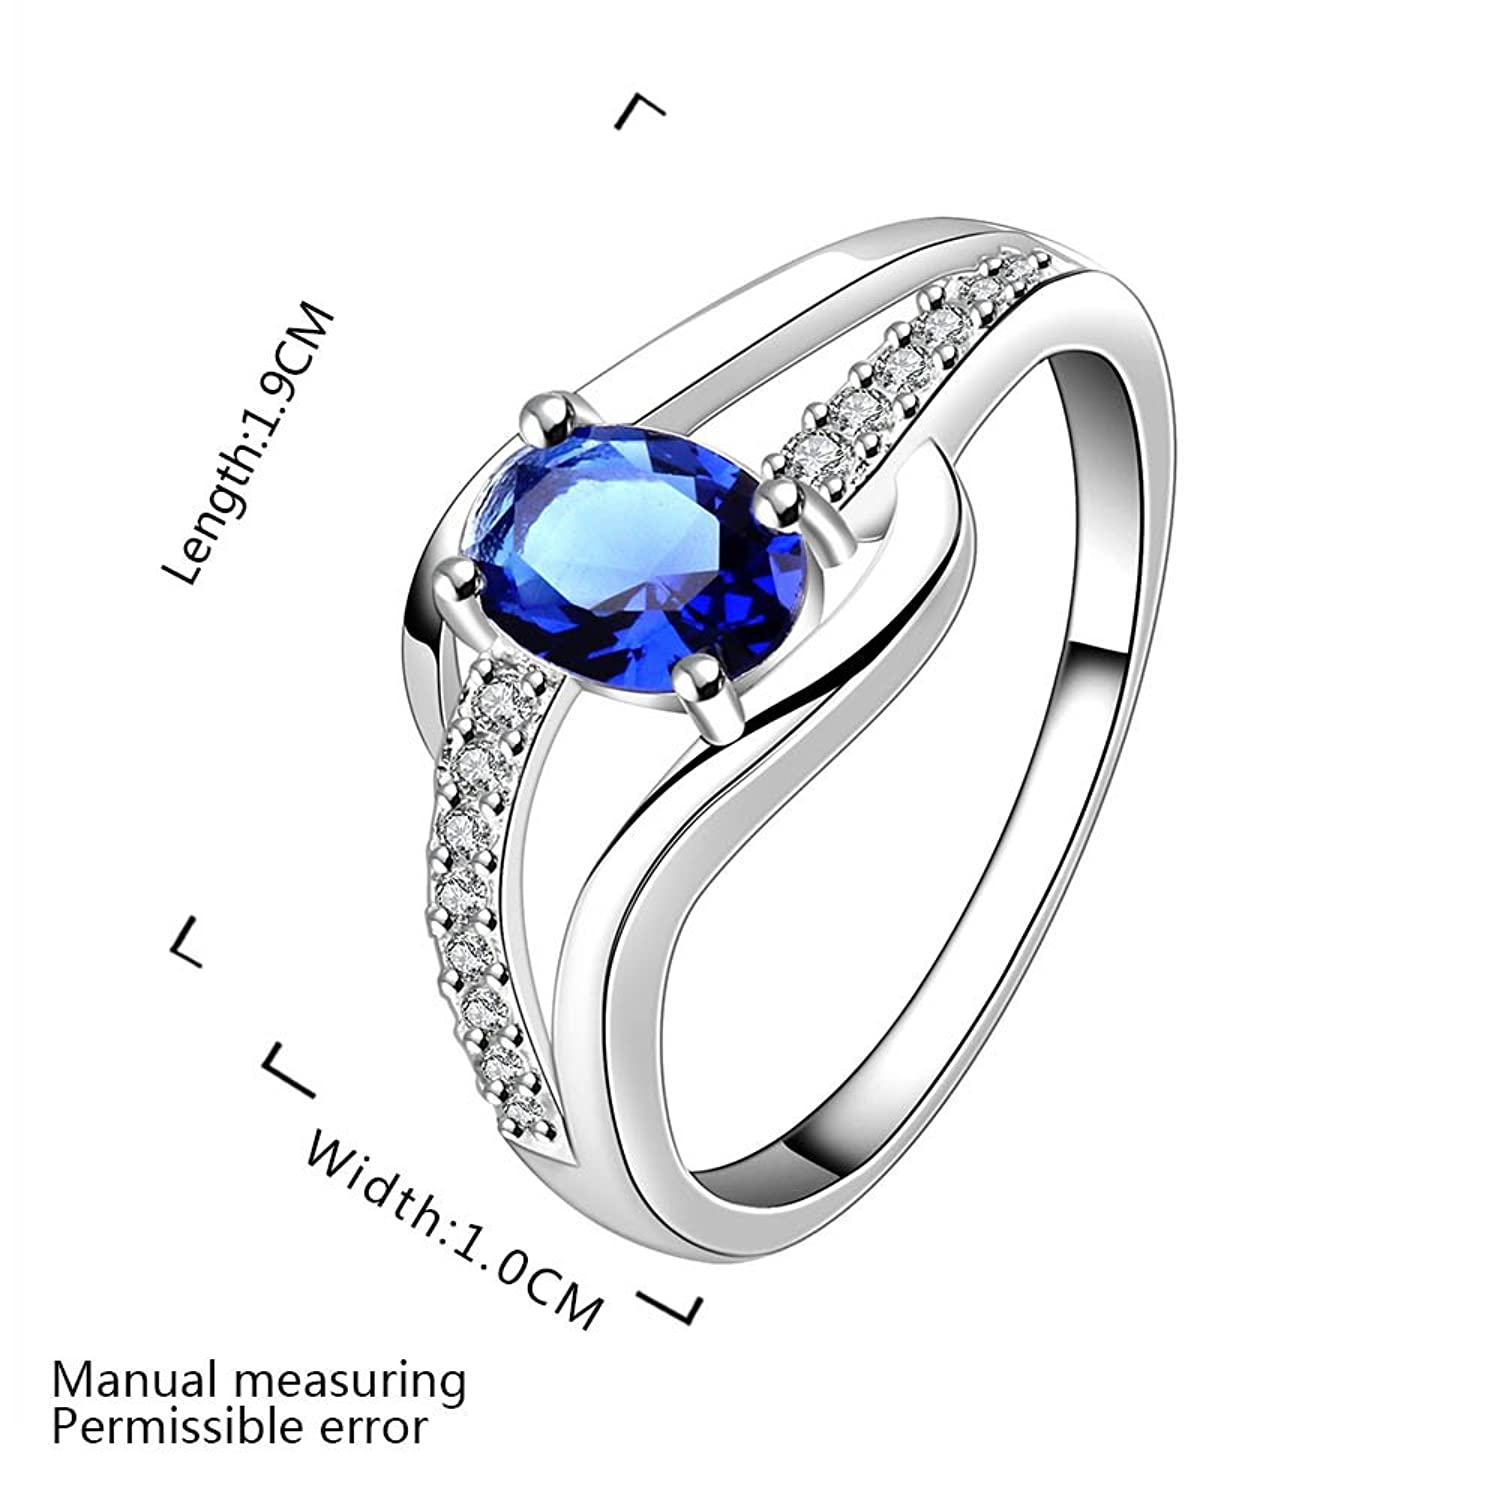 diamond ct jewelry royal gia ring wedding cut platinum ceylon natural genuine rings blue sapphire cushion